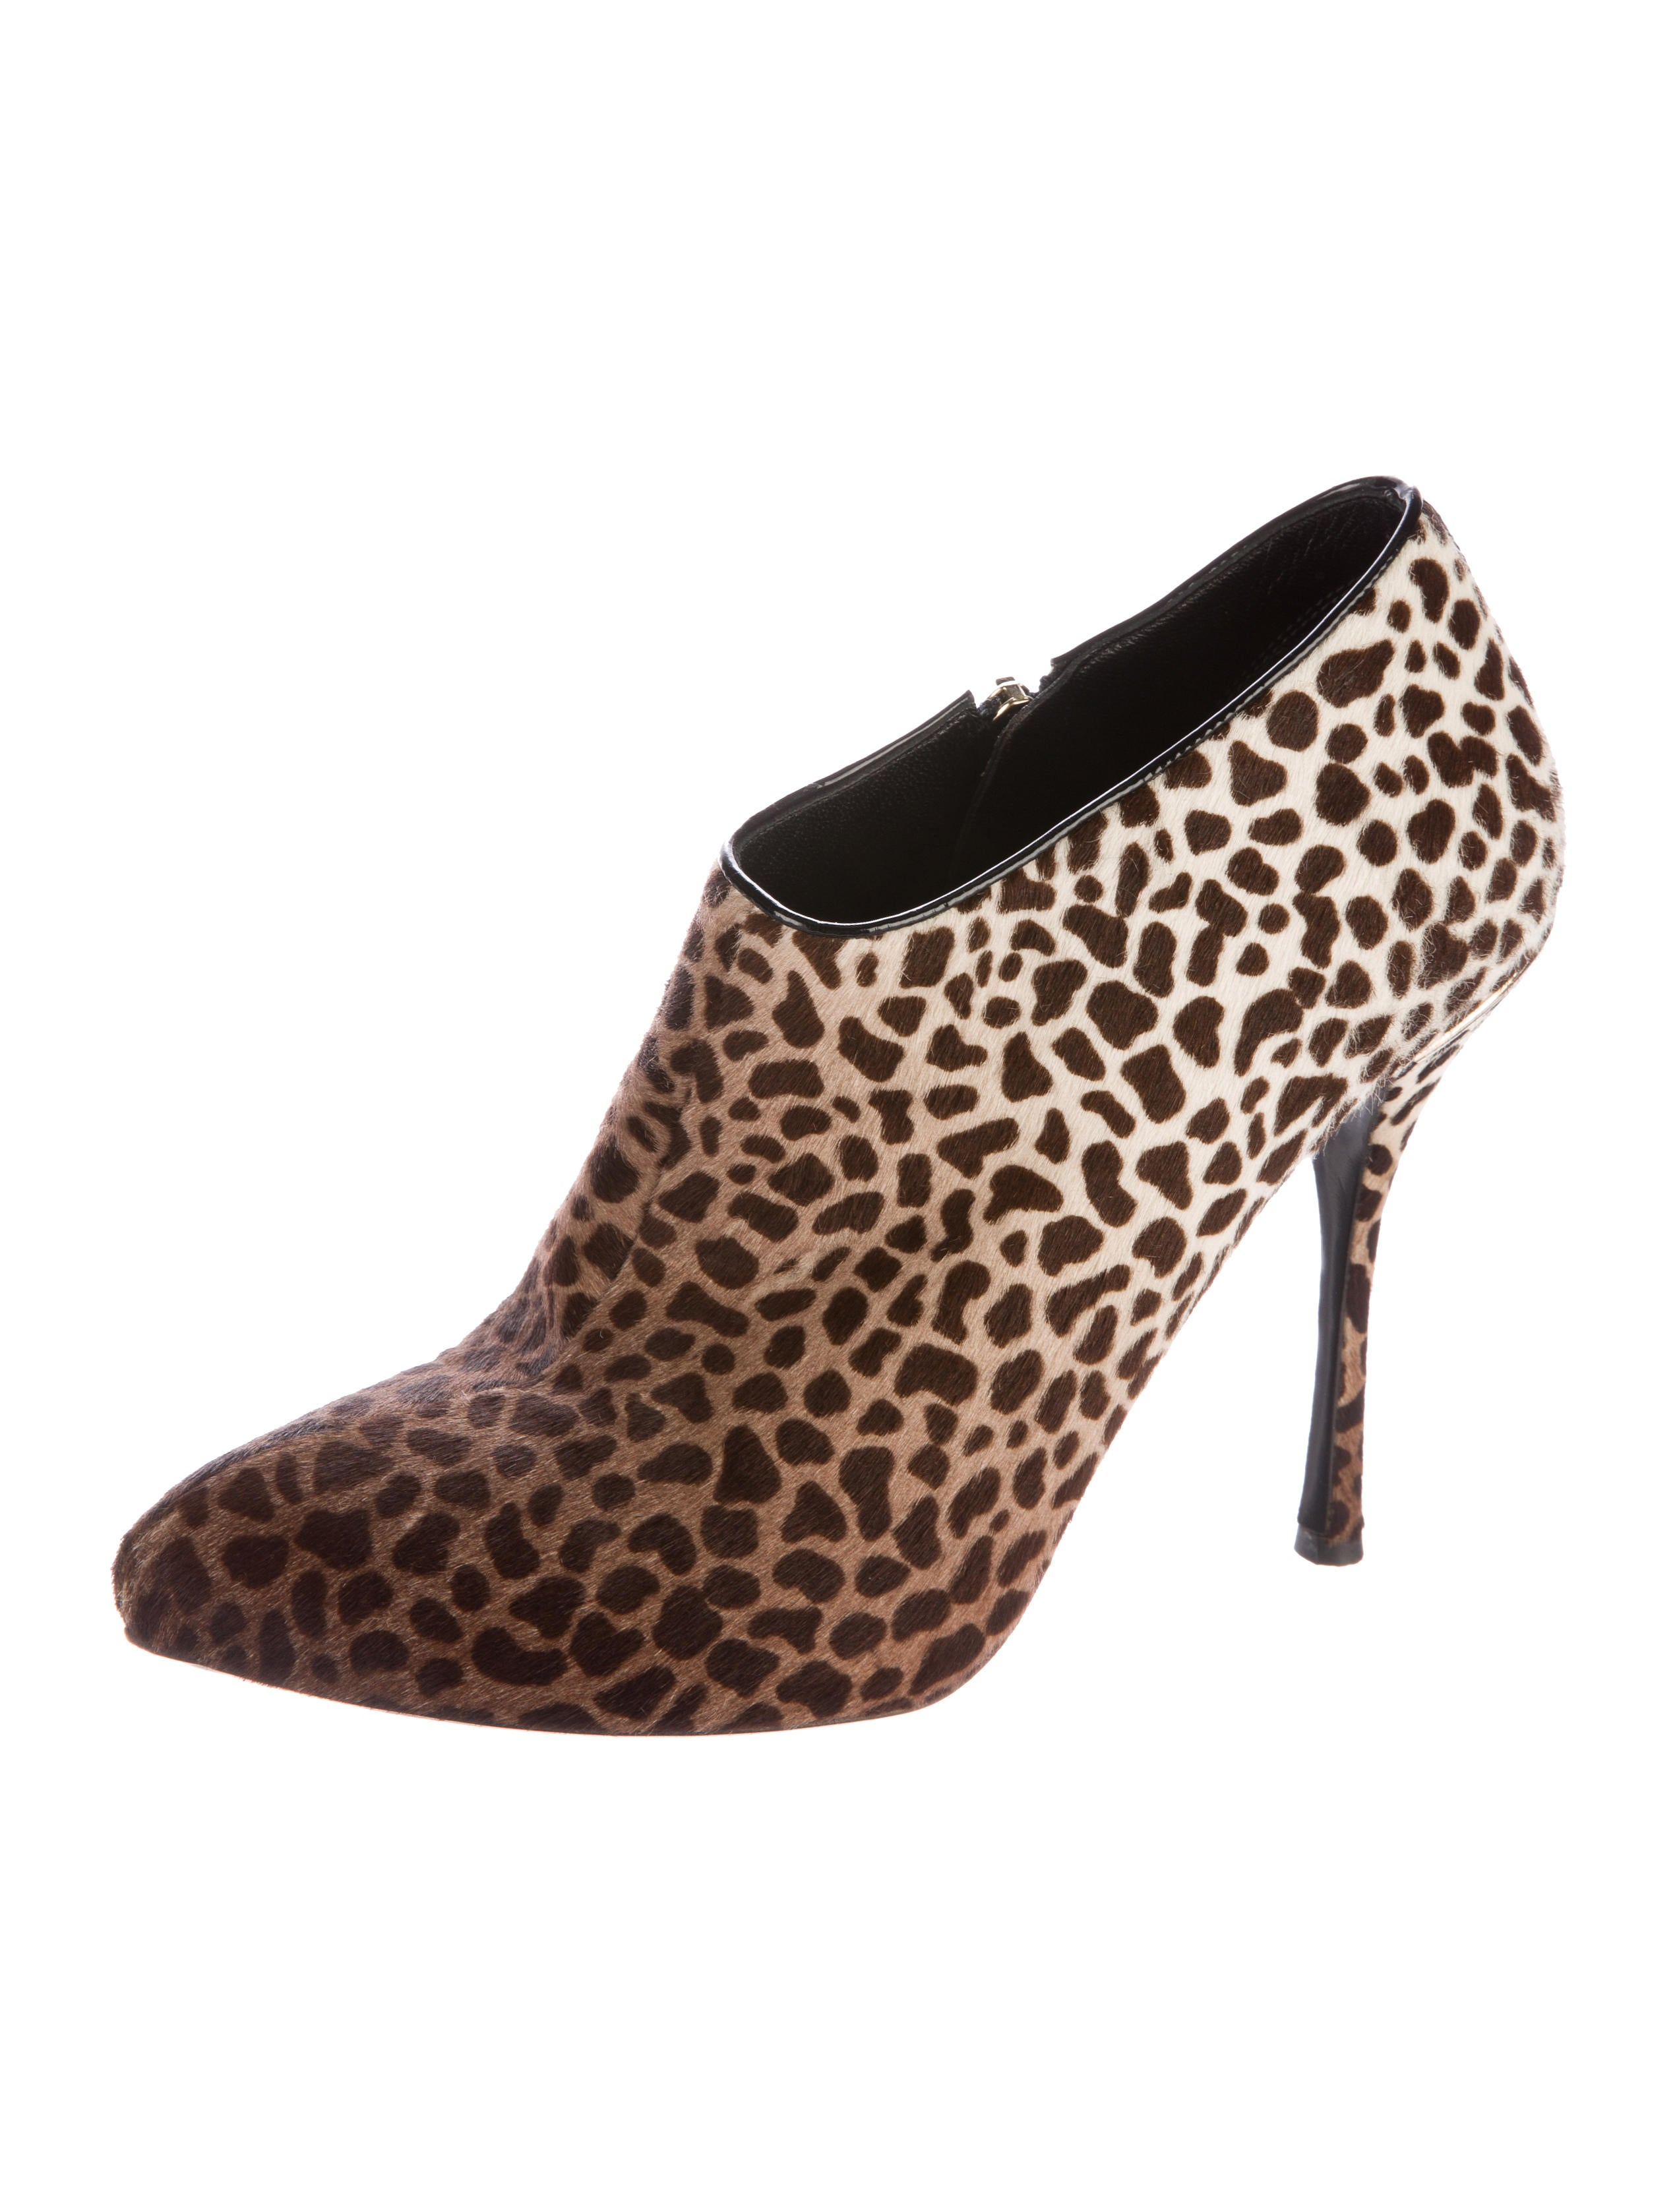 Find giraffe print shoes at ShopStyle. Shop the latest collection of giraffe print shoes from the most popular stores - all in one place.